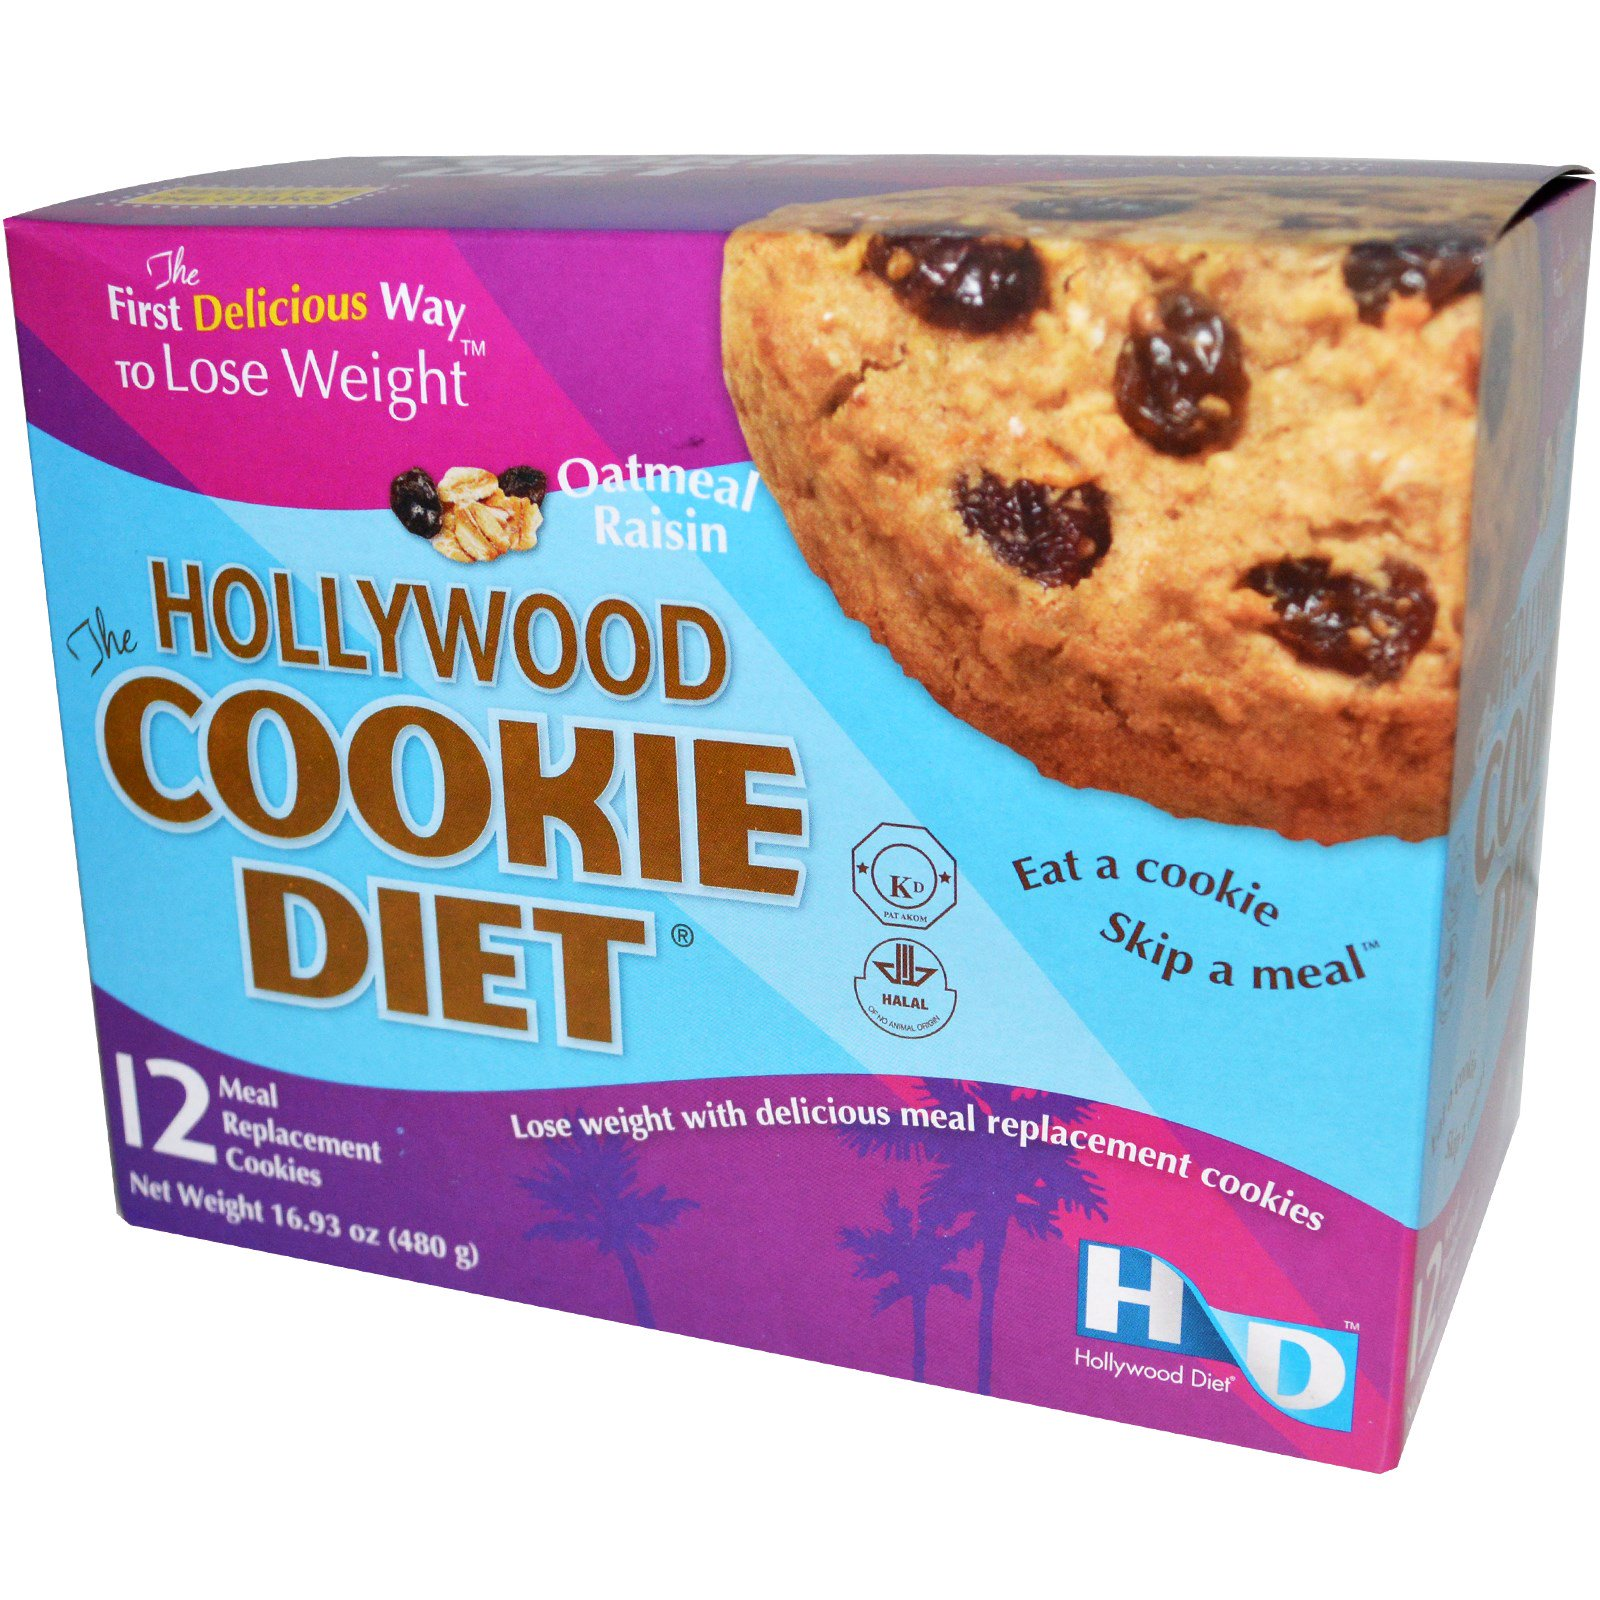 How to lose weight in Hollywood